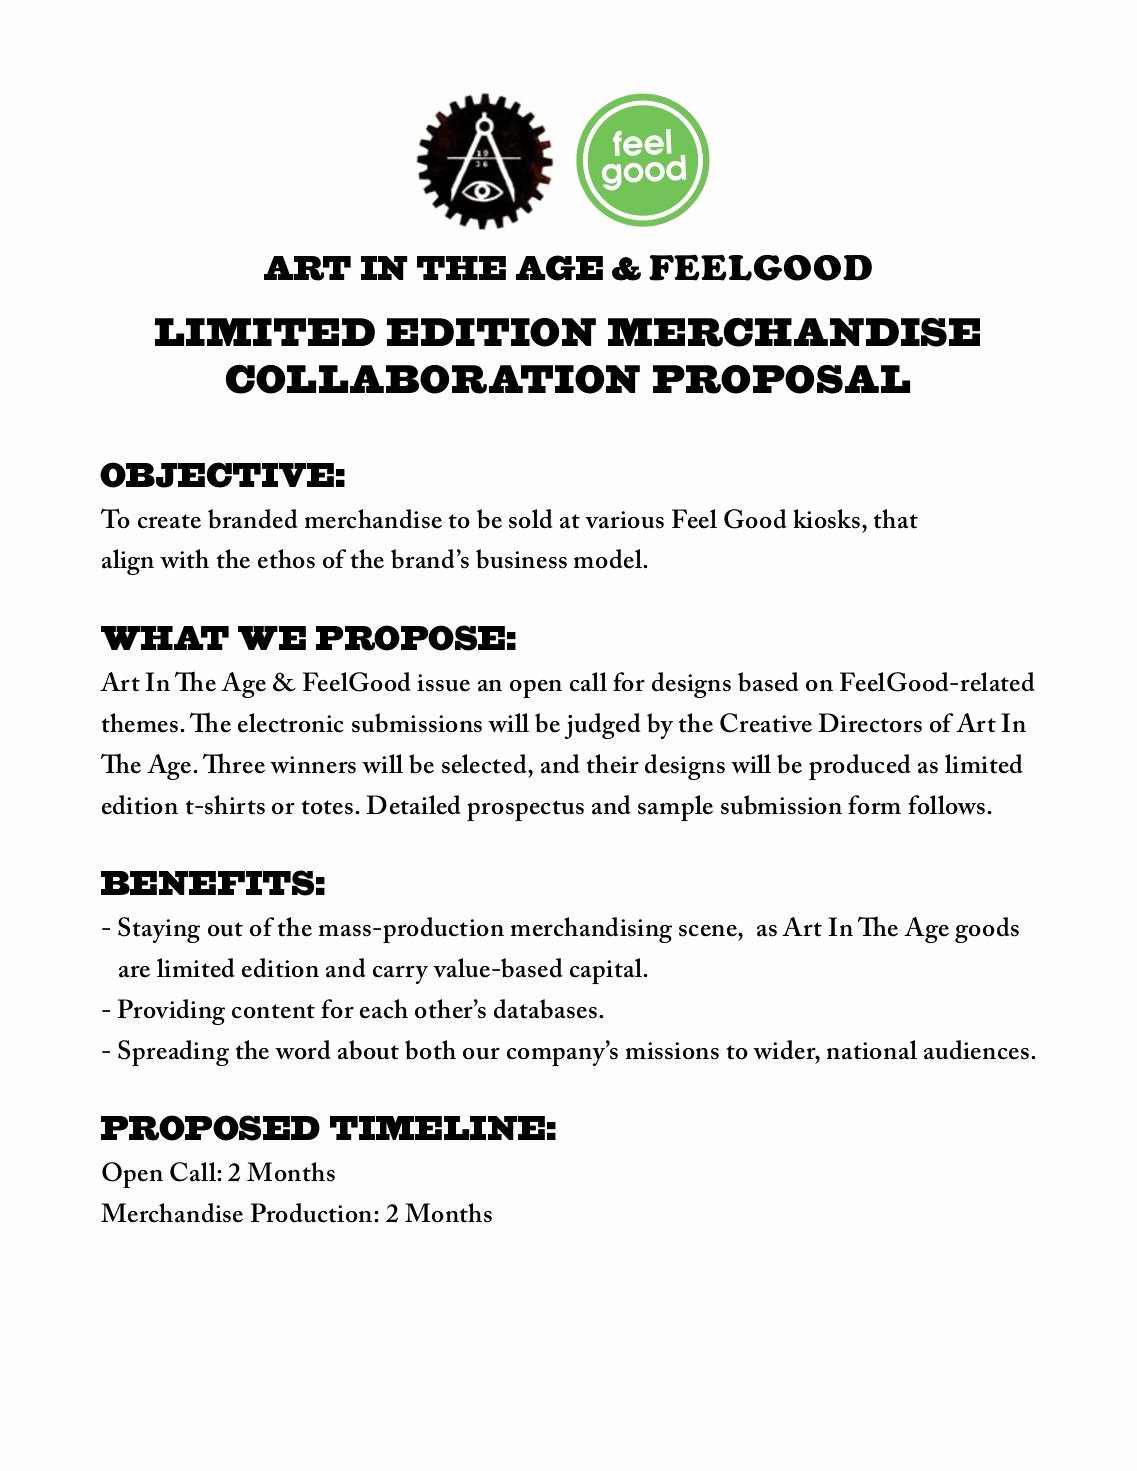 Collaboration Proposal Sample Fresh 1 Free Magazines From Artintheage